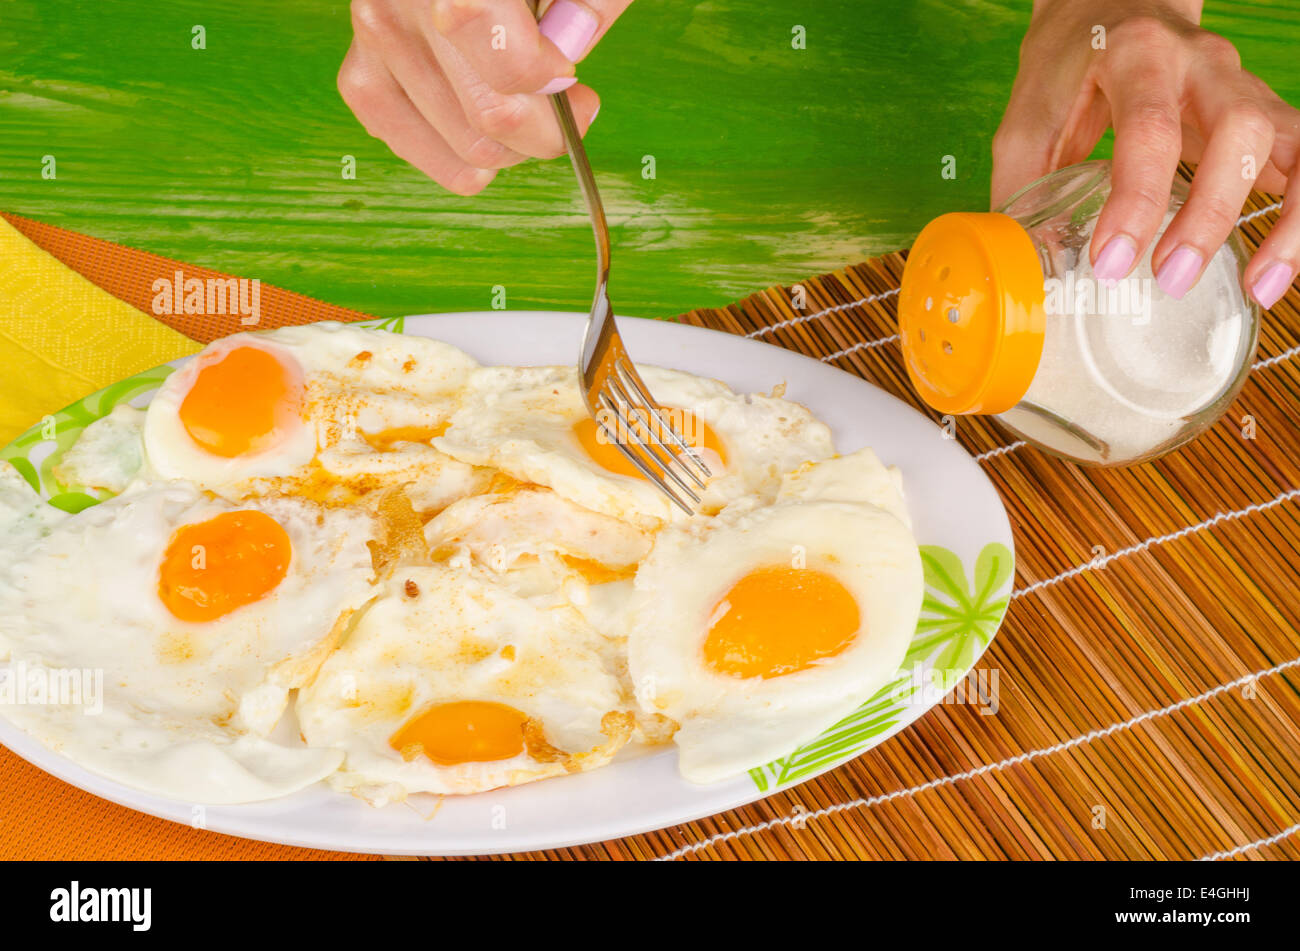 Heftily Salting Fried Eggs, An Unhealthy Nutrition Concept Stock ...